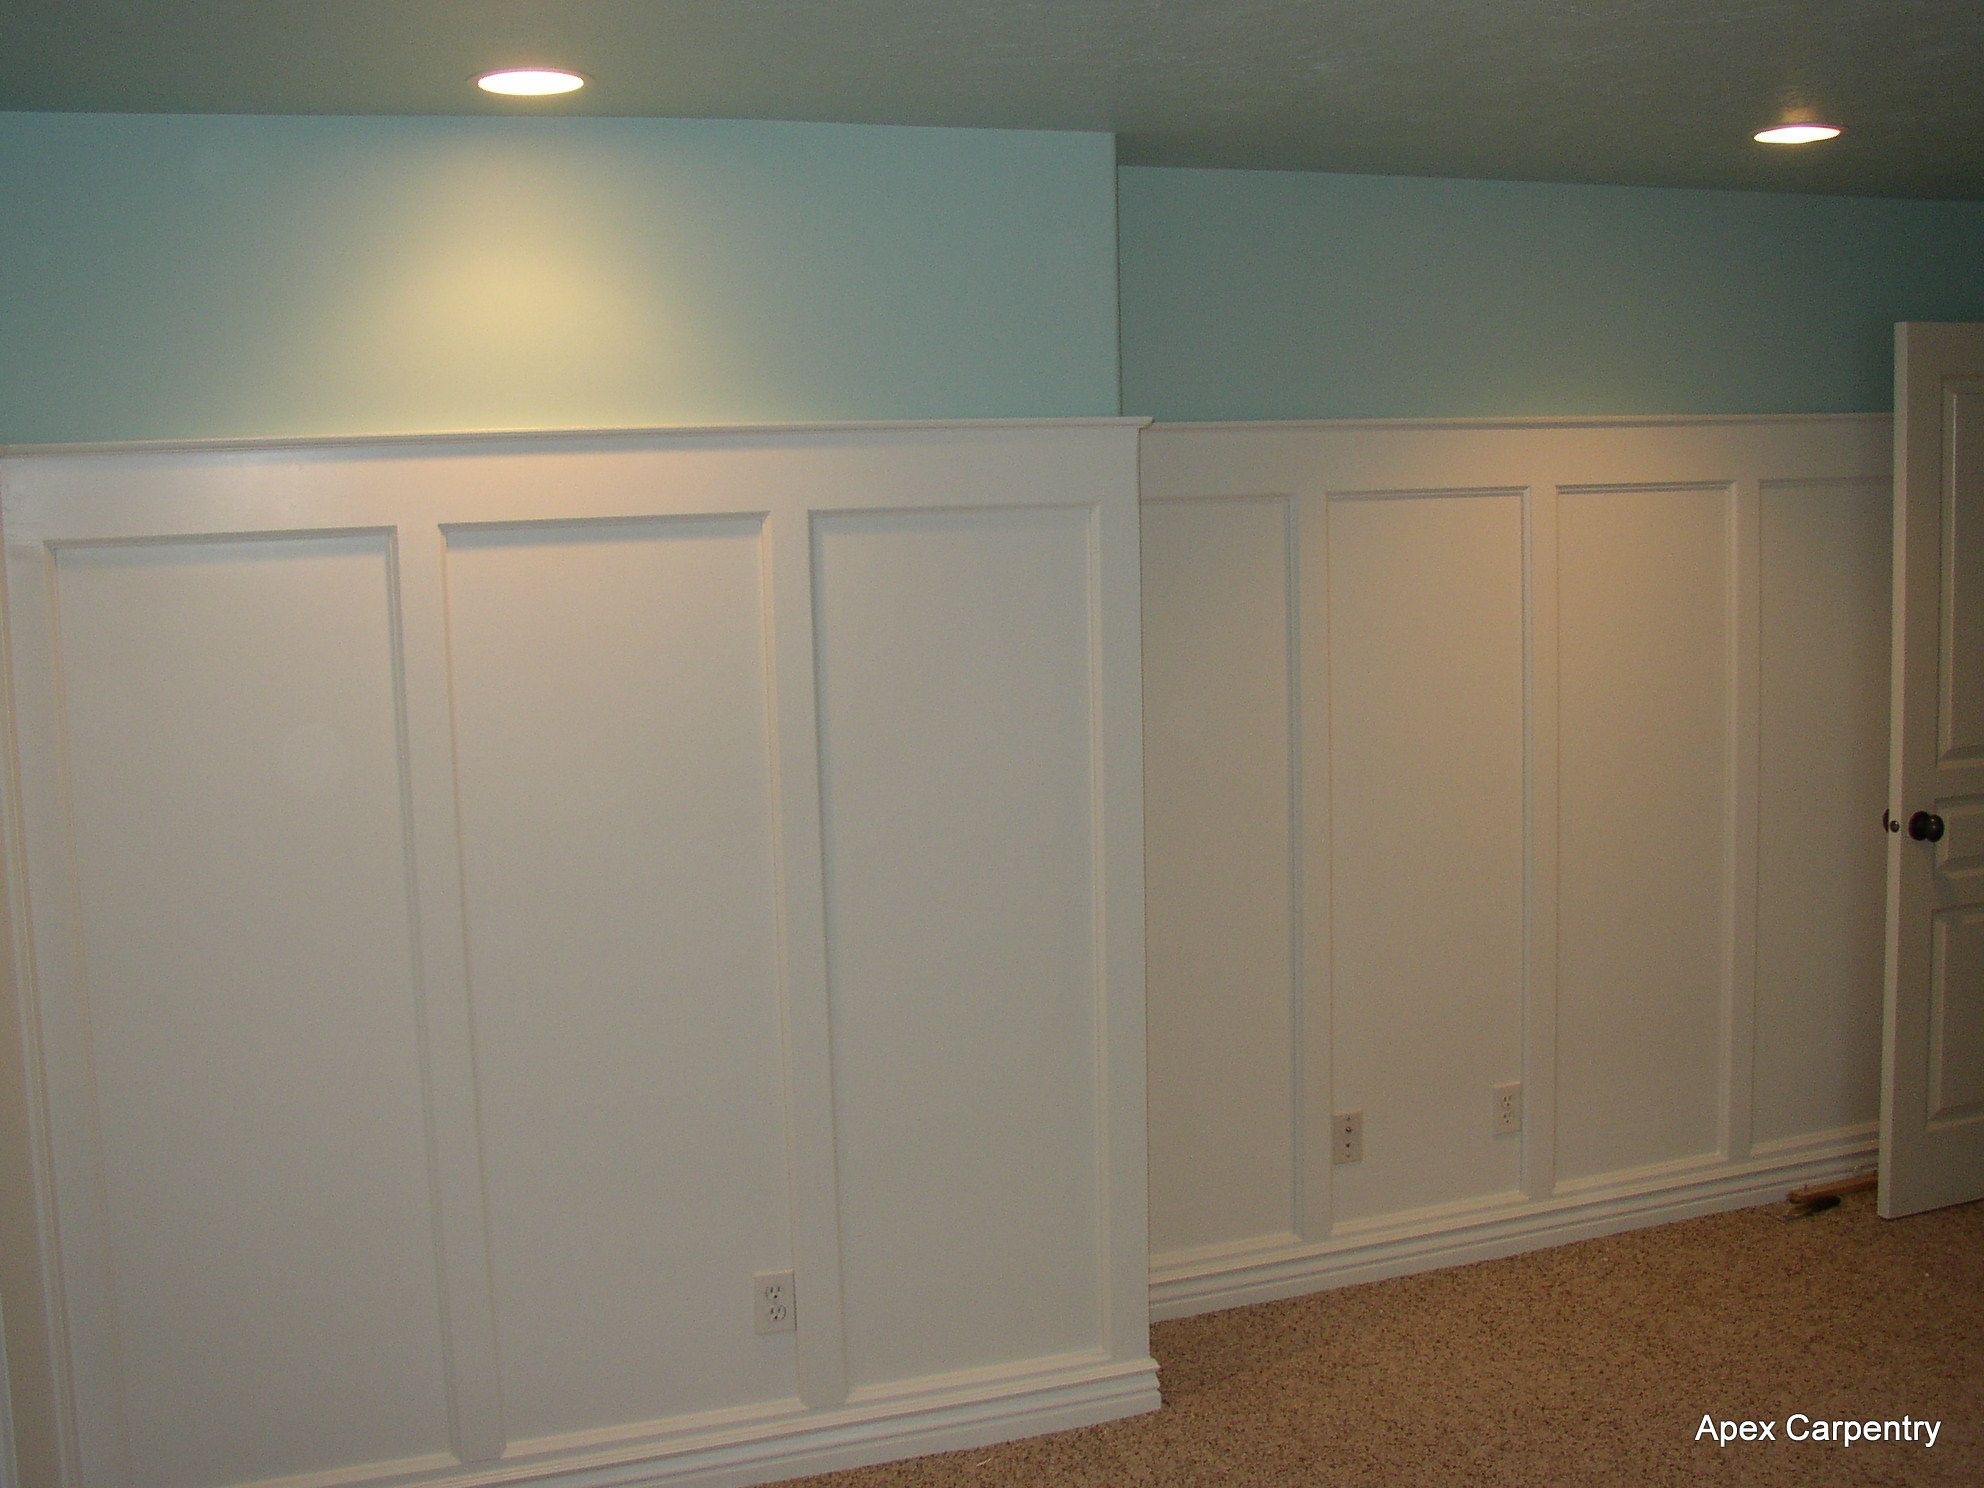 Wainscoting dining room wallpaper - Recreate This Look With The Molding Stopping 5 Up Then Add A Fabulous Wallpaper